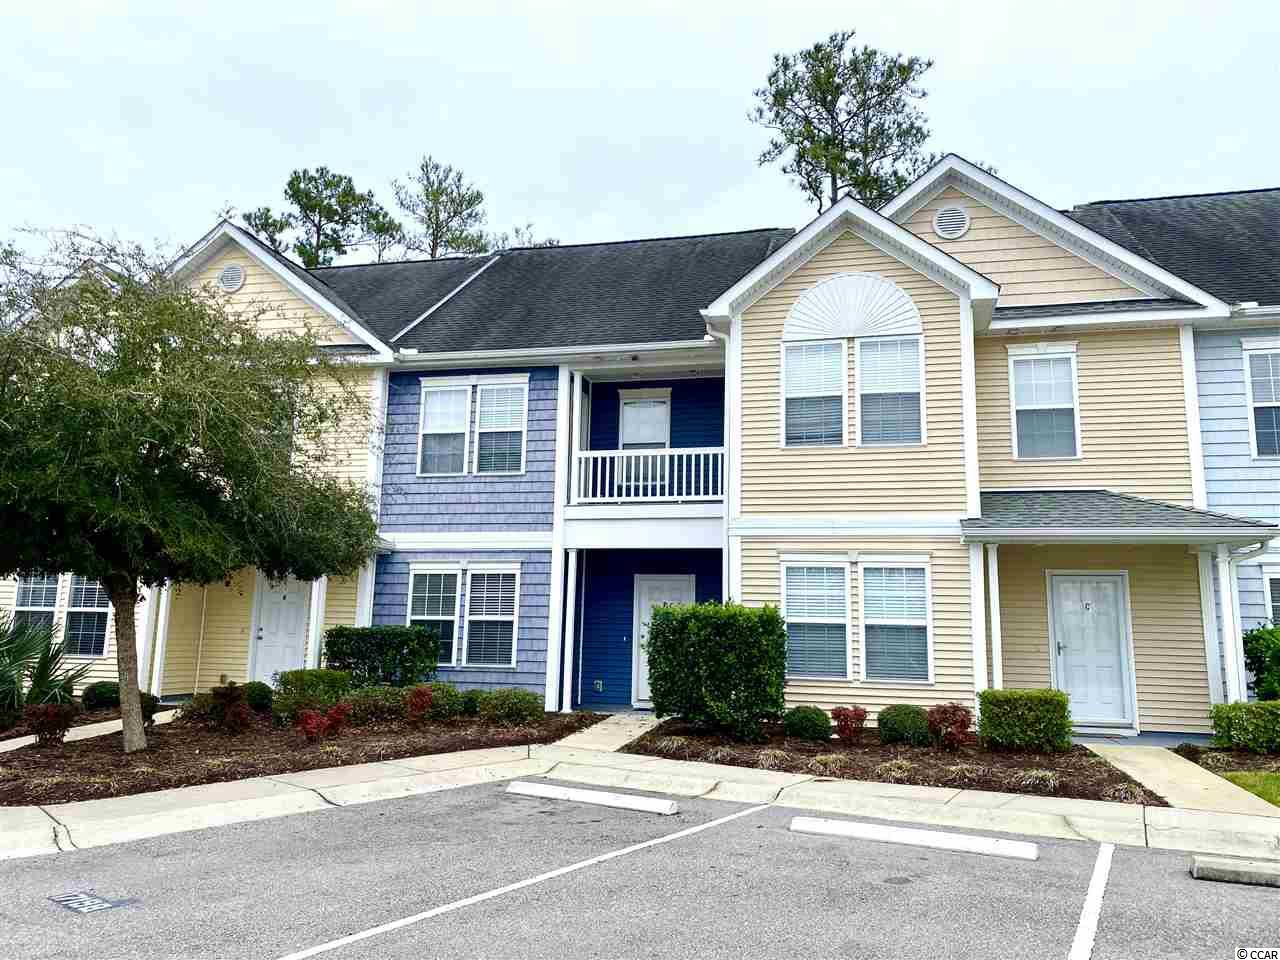 Convenient to everything!  This townhome style condo has 3 bedrooms, 2.5 bathrooms and sits in a quiet gated community.  Centrally located close to the Coastal Grande Mall, Broadway at the Beach, Myrtle Beach International Airport, Market Common and less than 3 miles to the beach.  Kitchen is well appointed with plenty of cabinets, classic granite countertops, and stainless steel appliances.  Off the large living room is a screen porch with an attached storage room.  There is a separate dining room which can also be a flex room.  A half bath, and a laundry area completes the first floor.  All bedrooms have cathedral ceilings and ceiling fans.  Owner's  bedroom has a walk in closet, owner's bathroom and a private balcony!  This unit has an interior sprinkler system, tile floors in the kitchen and bathrooms, and laminate flooring throughout.... NO carpet!  Low HOA dues include the community pool, landscaping, trash and exterior insurance.  Perfect for a primary, secondary or investment home.  This low maintenance living in the heart of Myrtle Beach with easy access to Hwy 501, 17 and 31 is the one you've been waiting for!